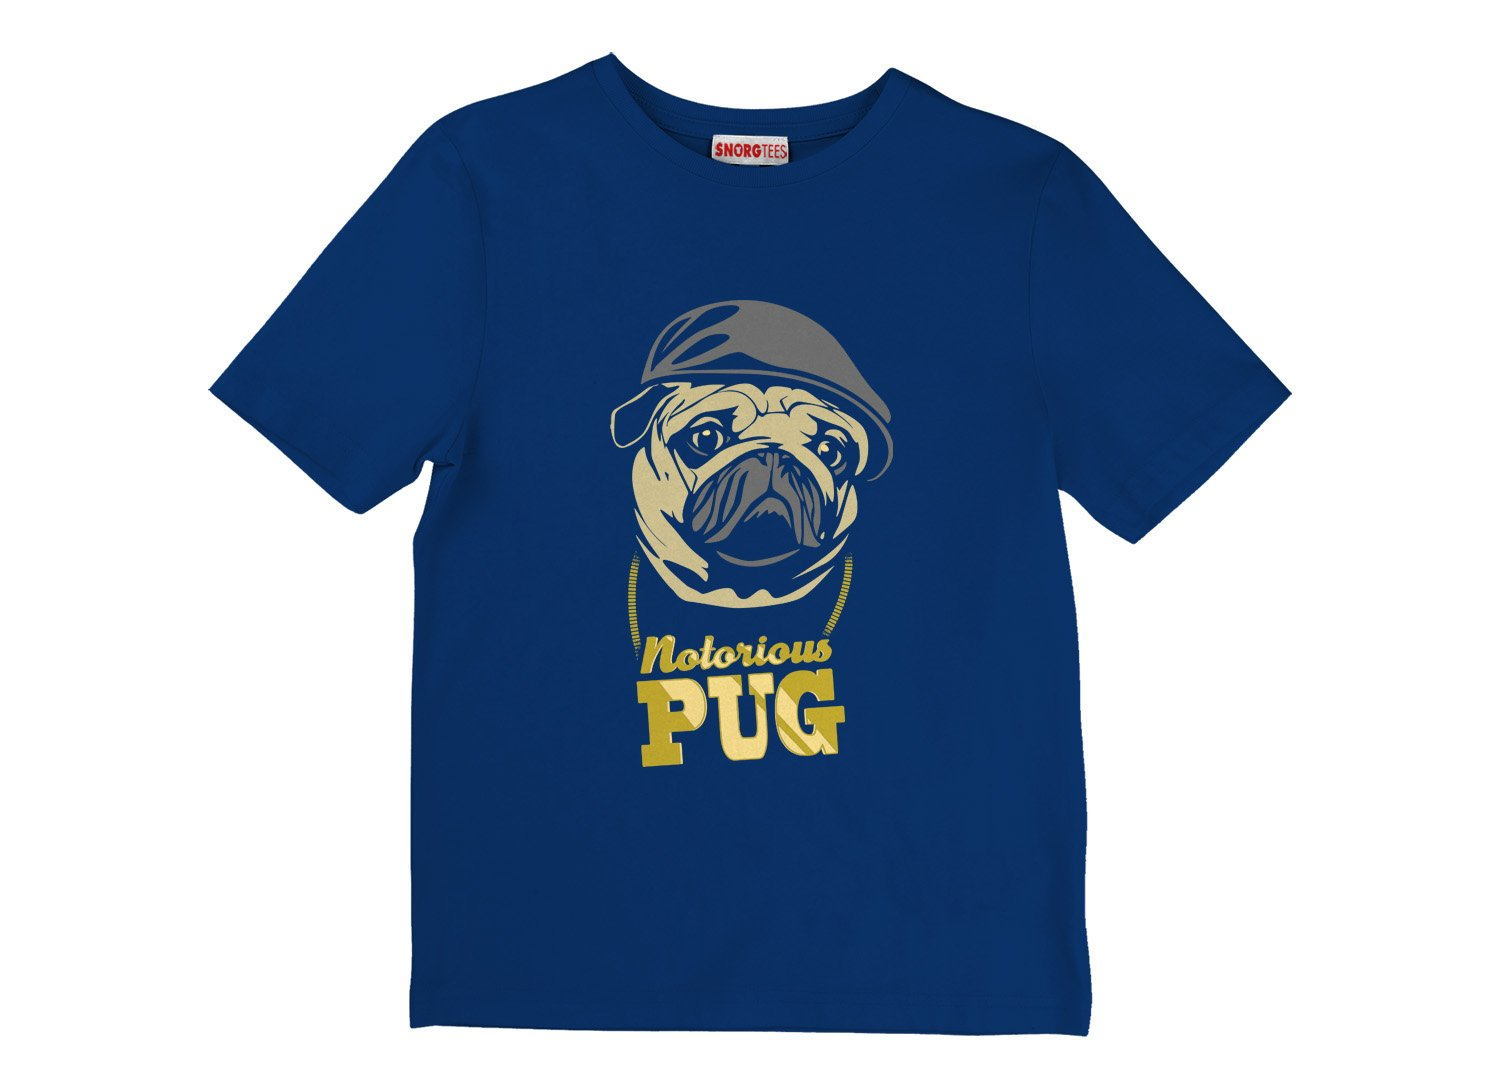 Notorious PUG on Kids T-Shirt